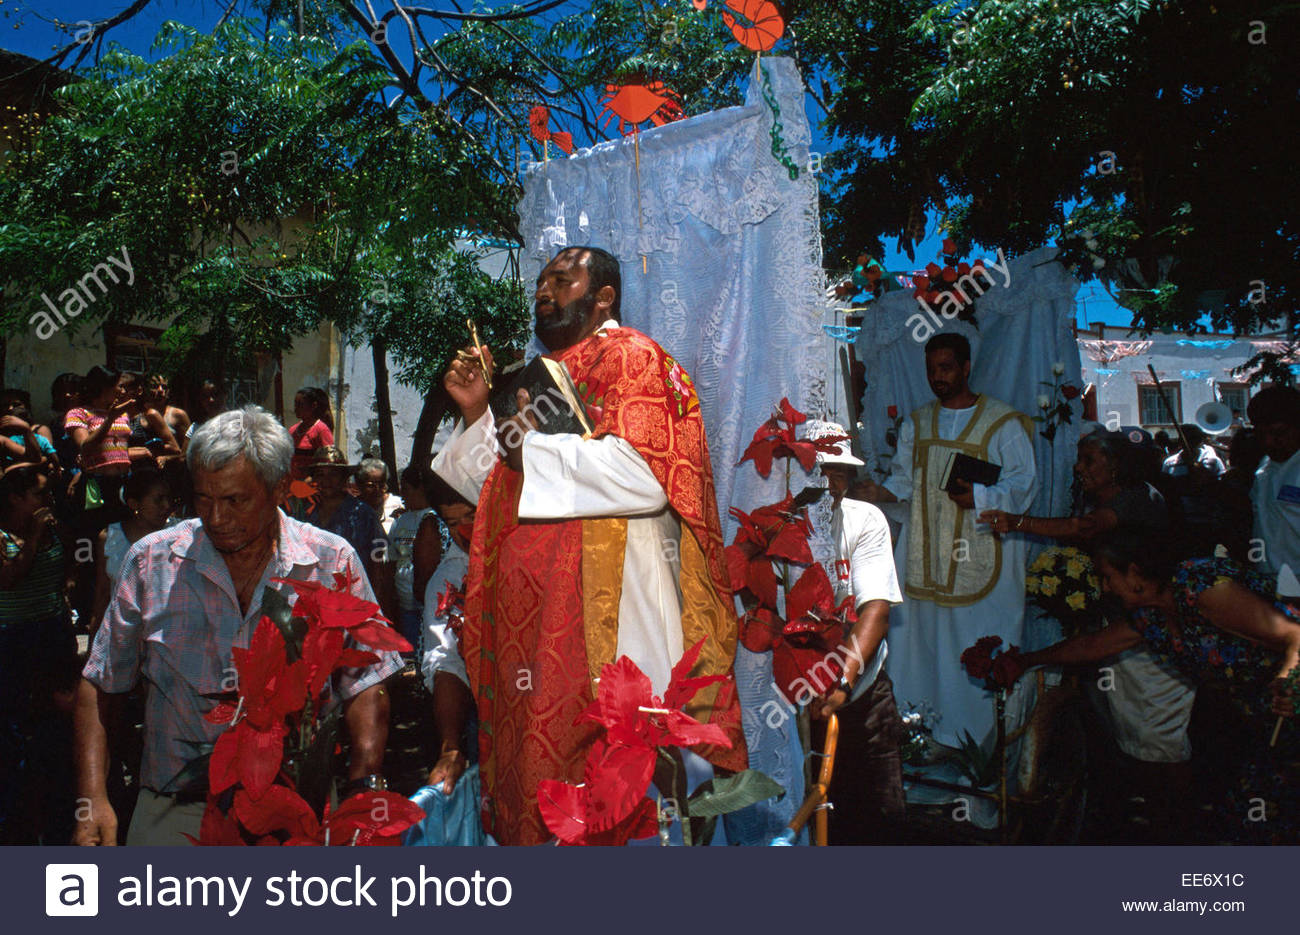 Mexcaltitan, Procession celebrating the island's patron Saint - Stock Image